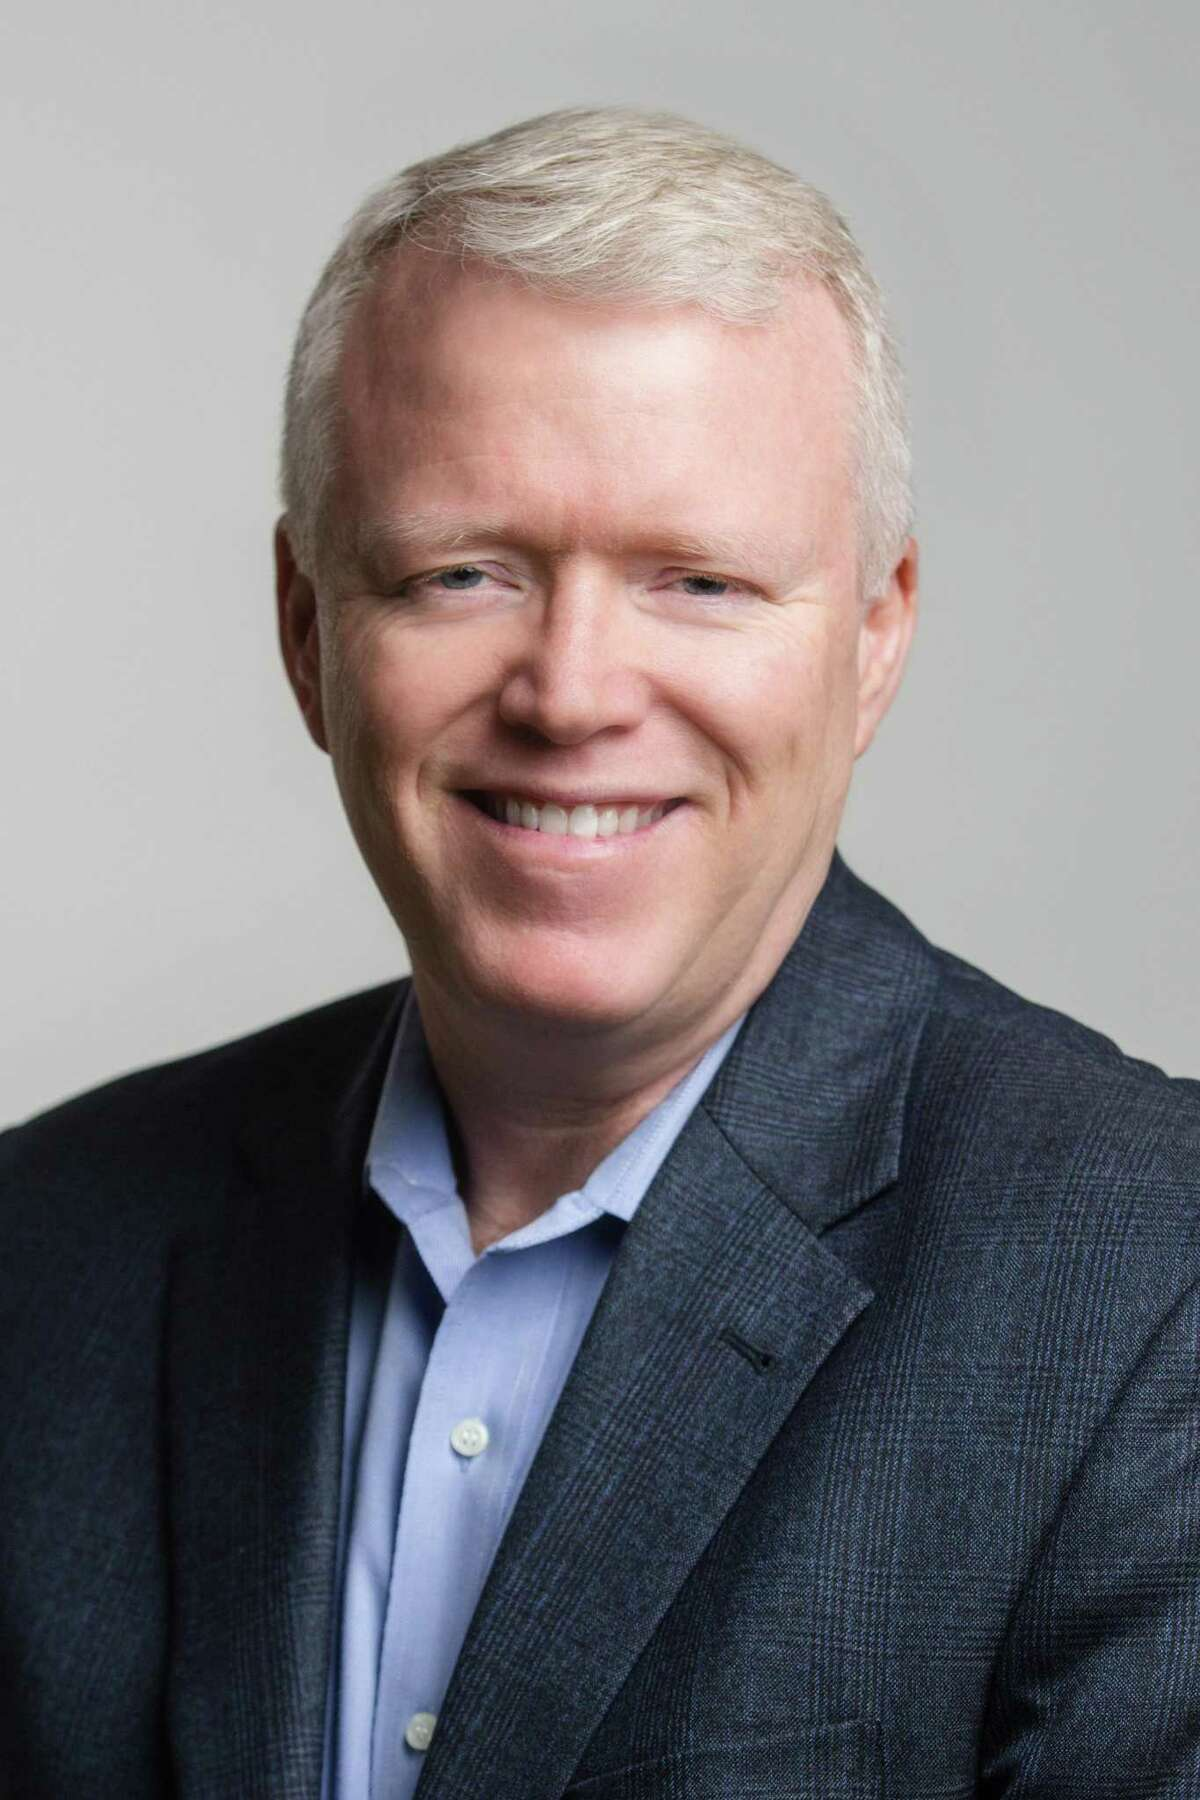 Doug Claffey is founder of Energage, which conducts the Top Workplaces survey for The Houston Chronicle.